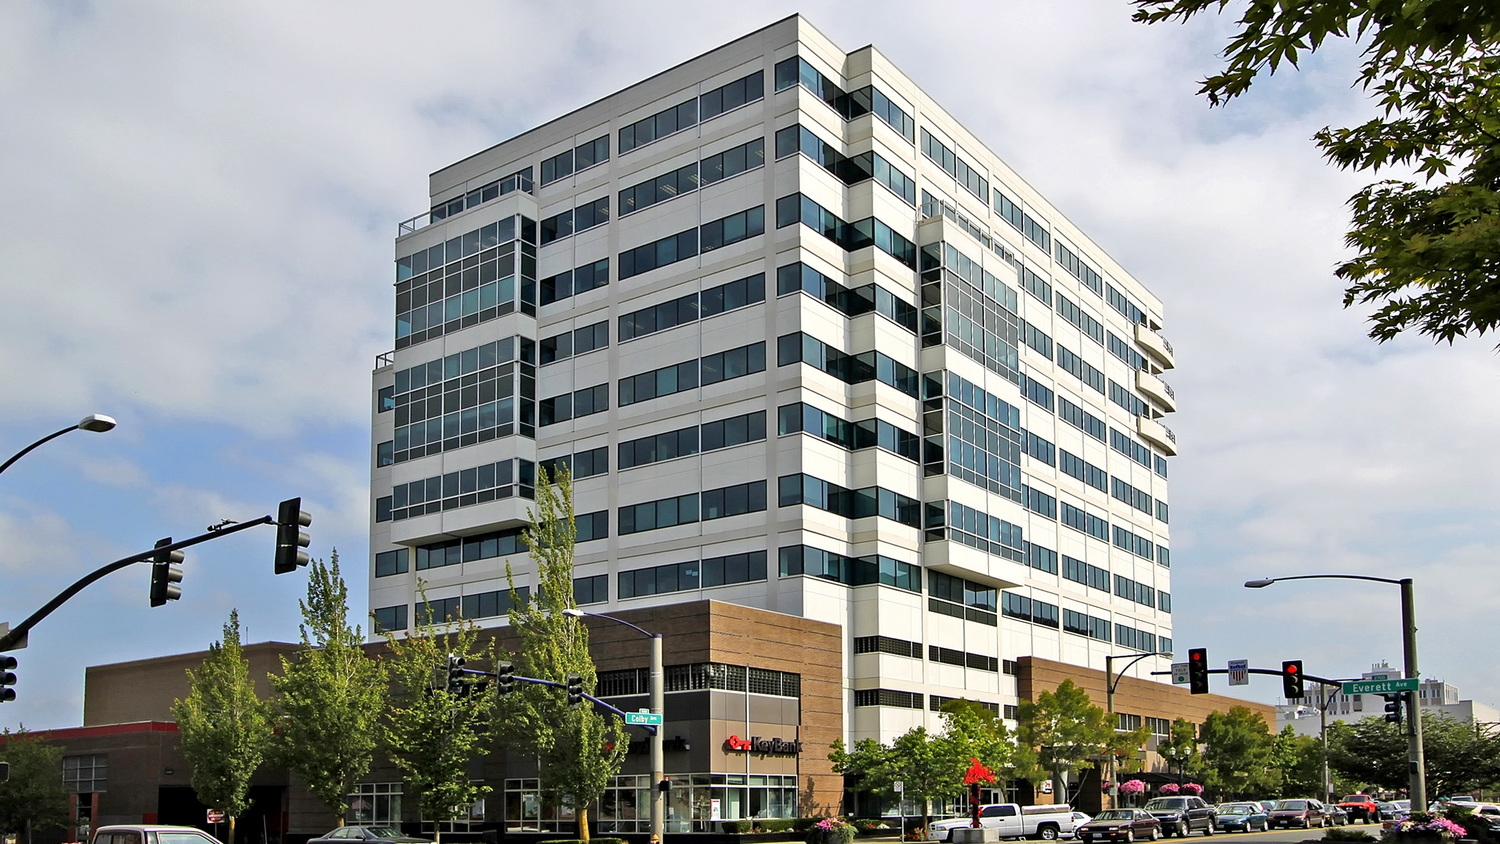 Key Bank Tower.    Address : 2707 Colby Ave.  Details : Located directly in the downtown financial district. Featuring sweeping views of the Cascade mountains and the Puget Sound. Cafe and Salon on-site.  Managed by : Skotdal Real Estate.  Phone : 425.252.5400.